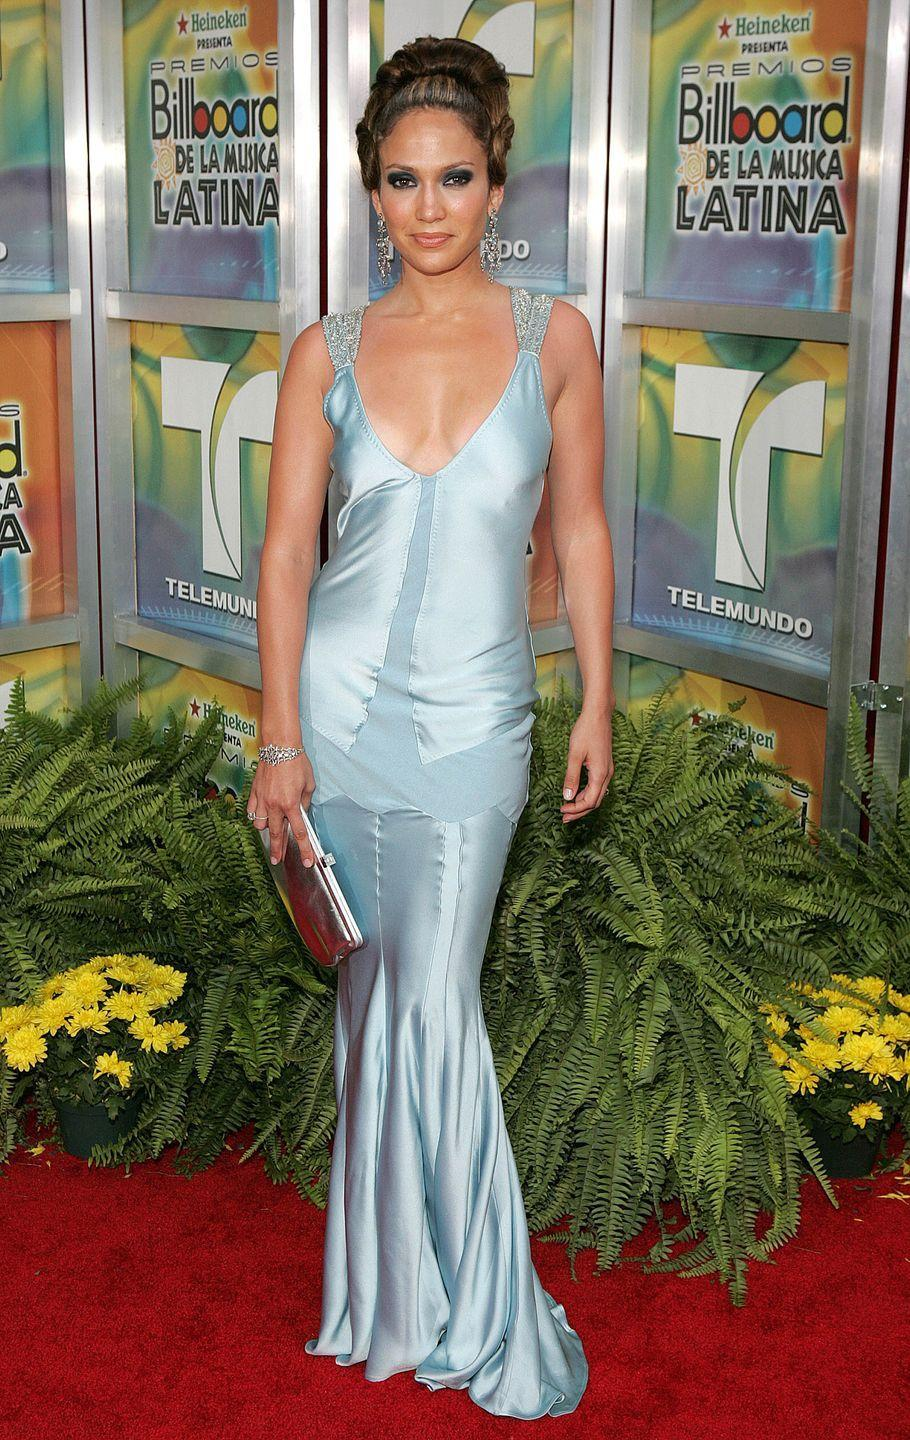 <p>Jennifer wears a gorge satin gown with sparkly straps with a metallic clutch and intricate updo at the Billboard Latin Music Awards.</p>